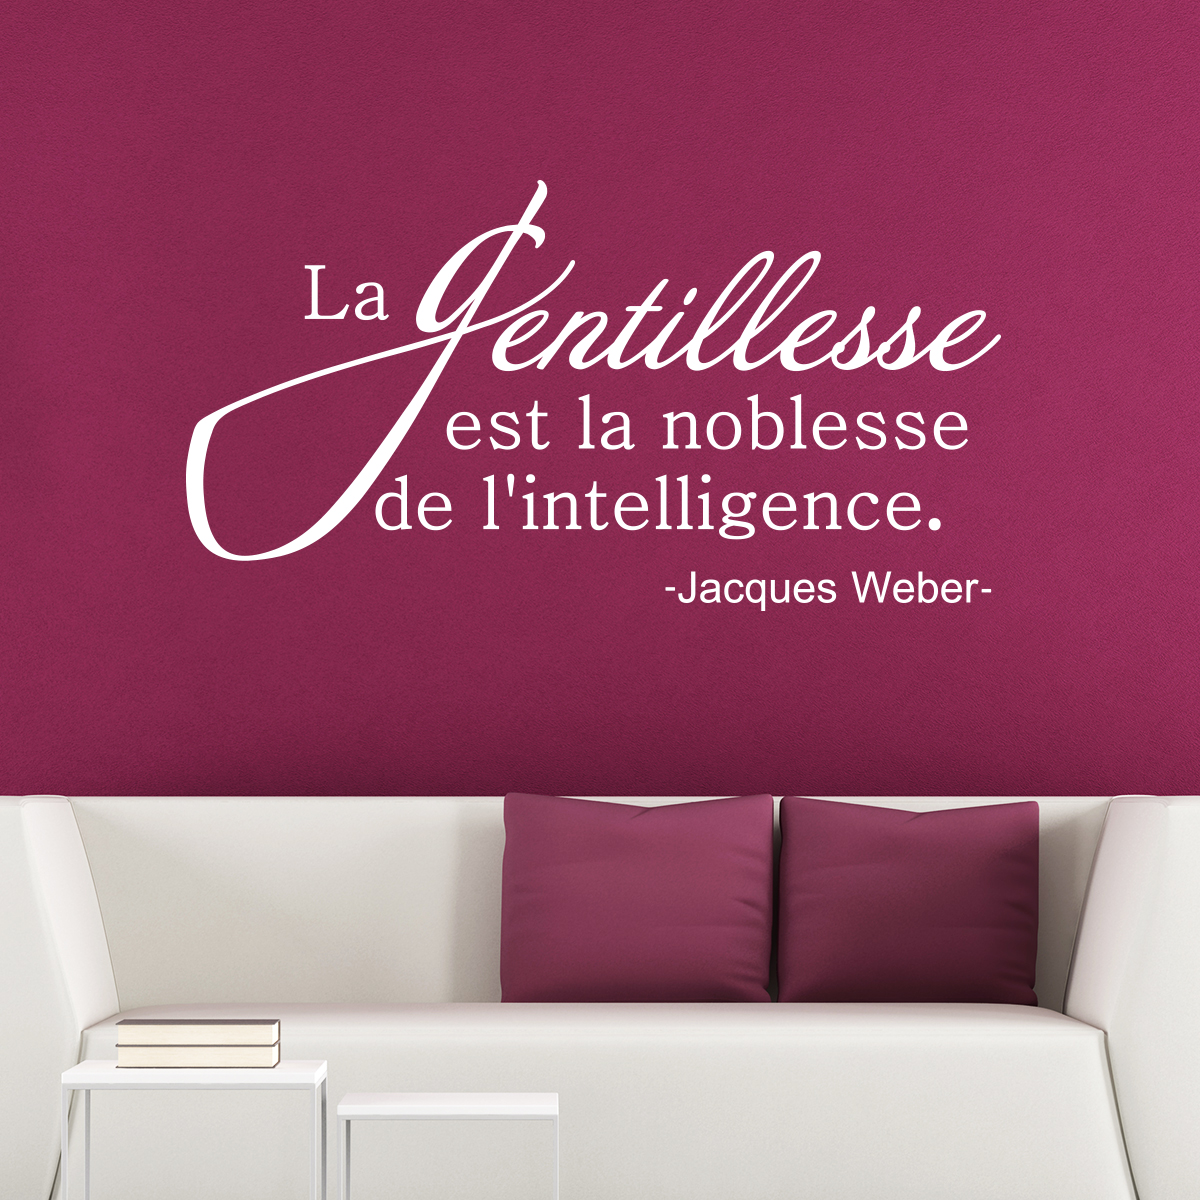 sticker citation la gentillesse est la noblesse stickers. Black Bedroom Furniture Sets. Home Design Ideas